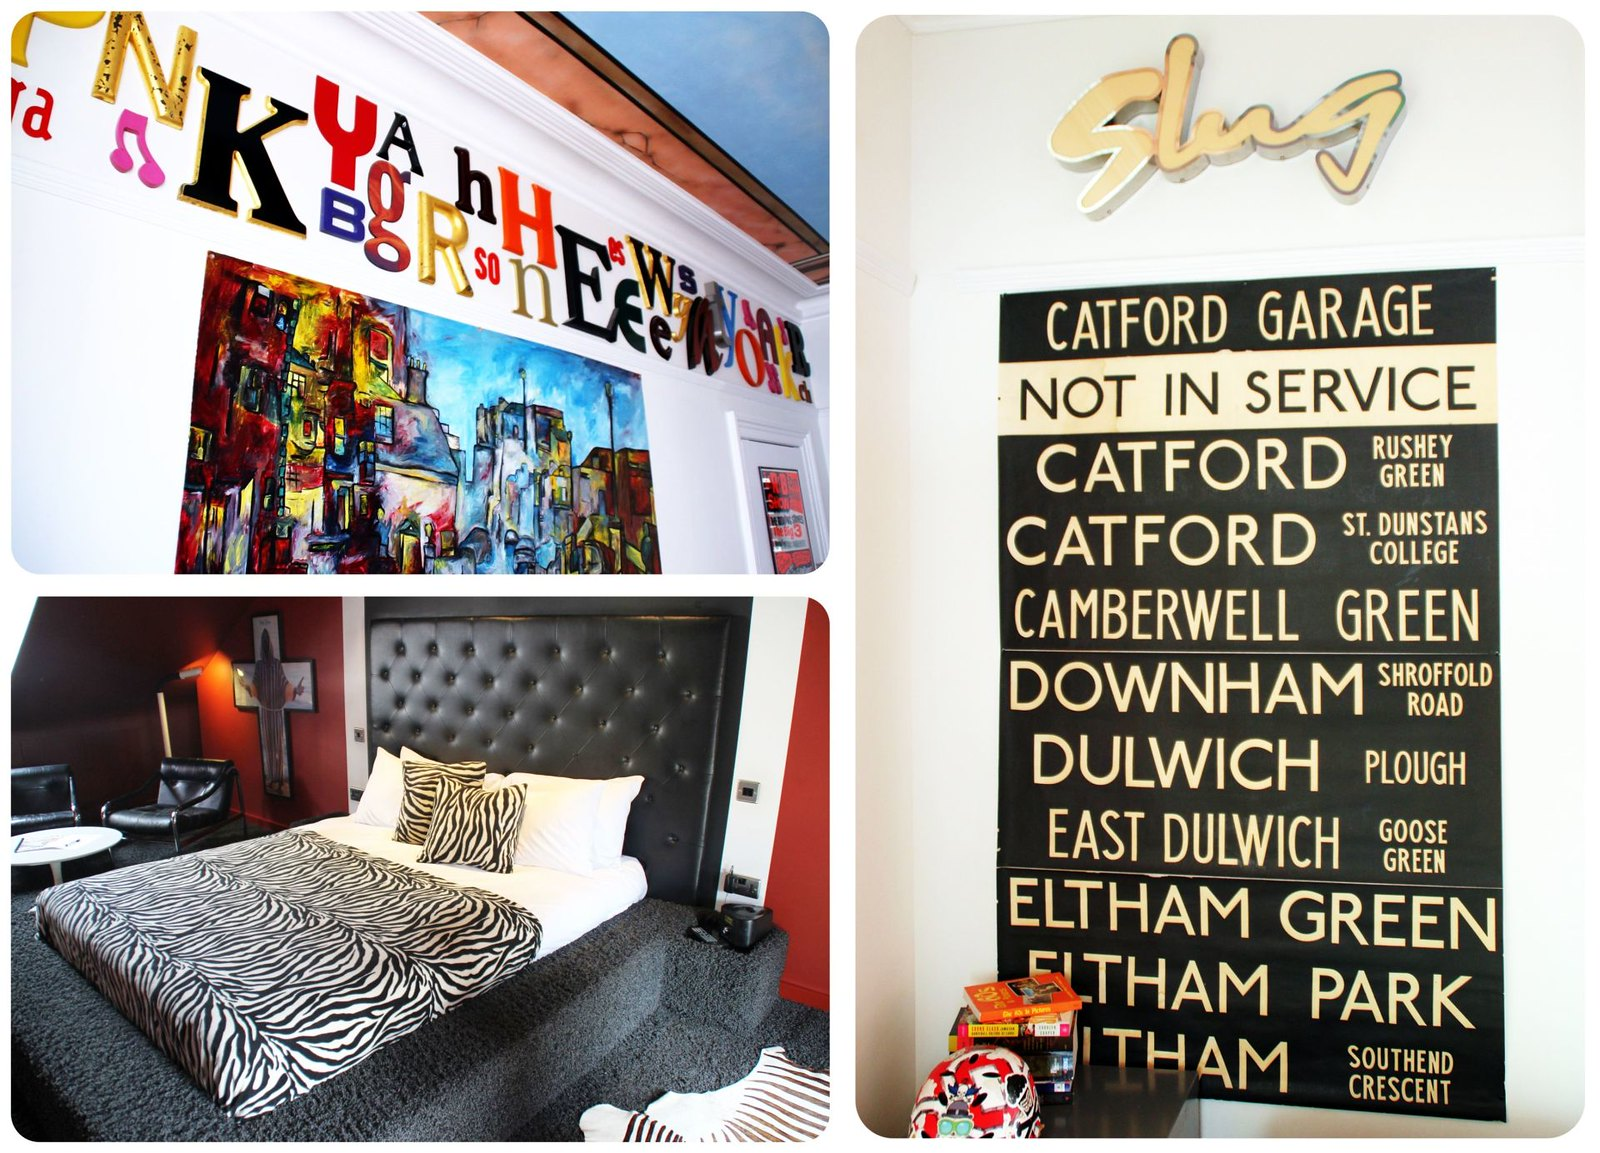 Brighton Snooze Bed and Breakfast